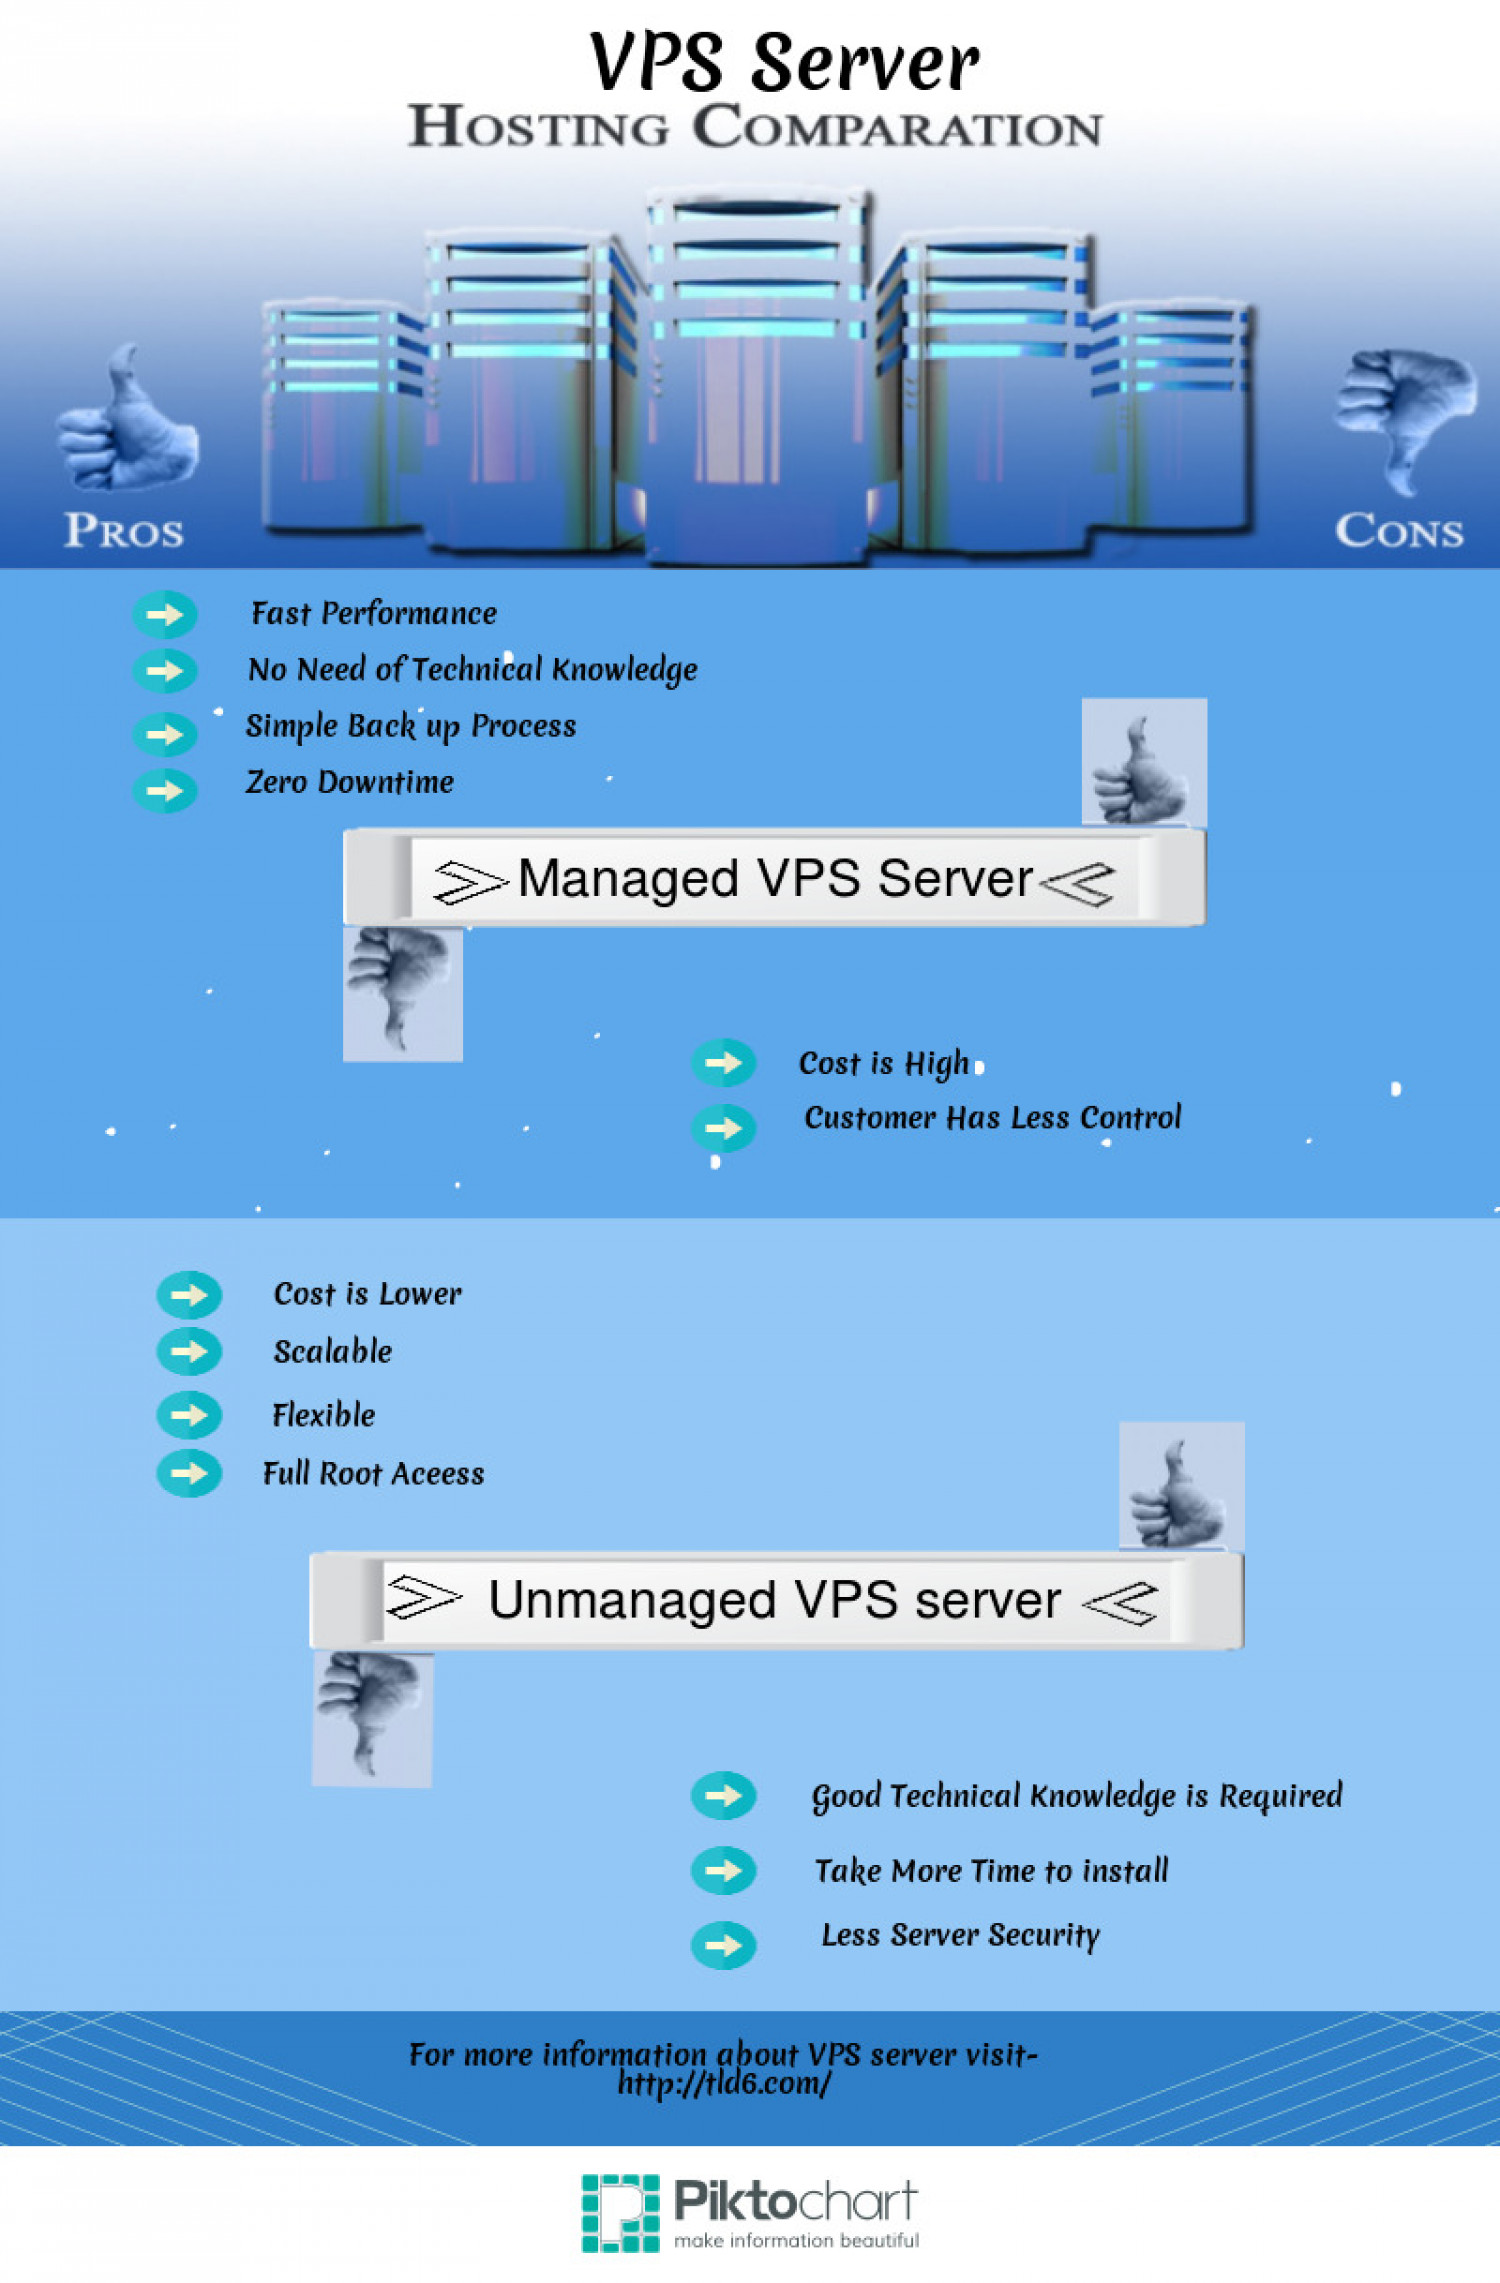 VPS Server Comparison Infographic